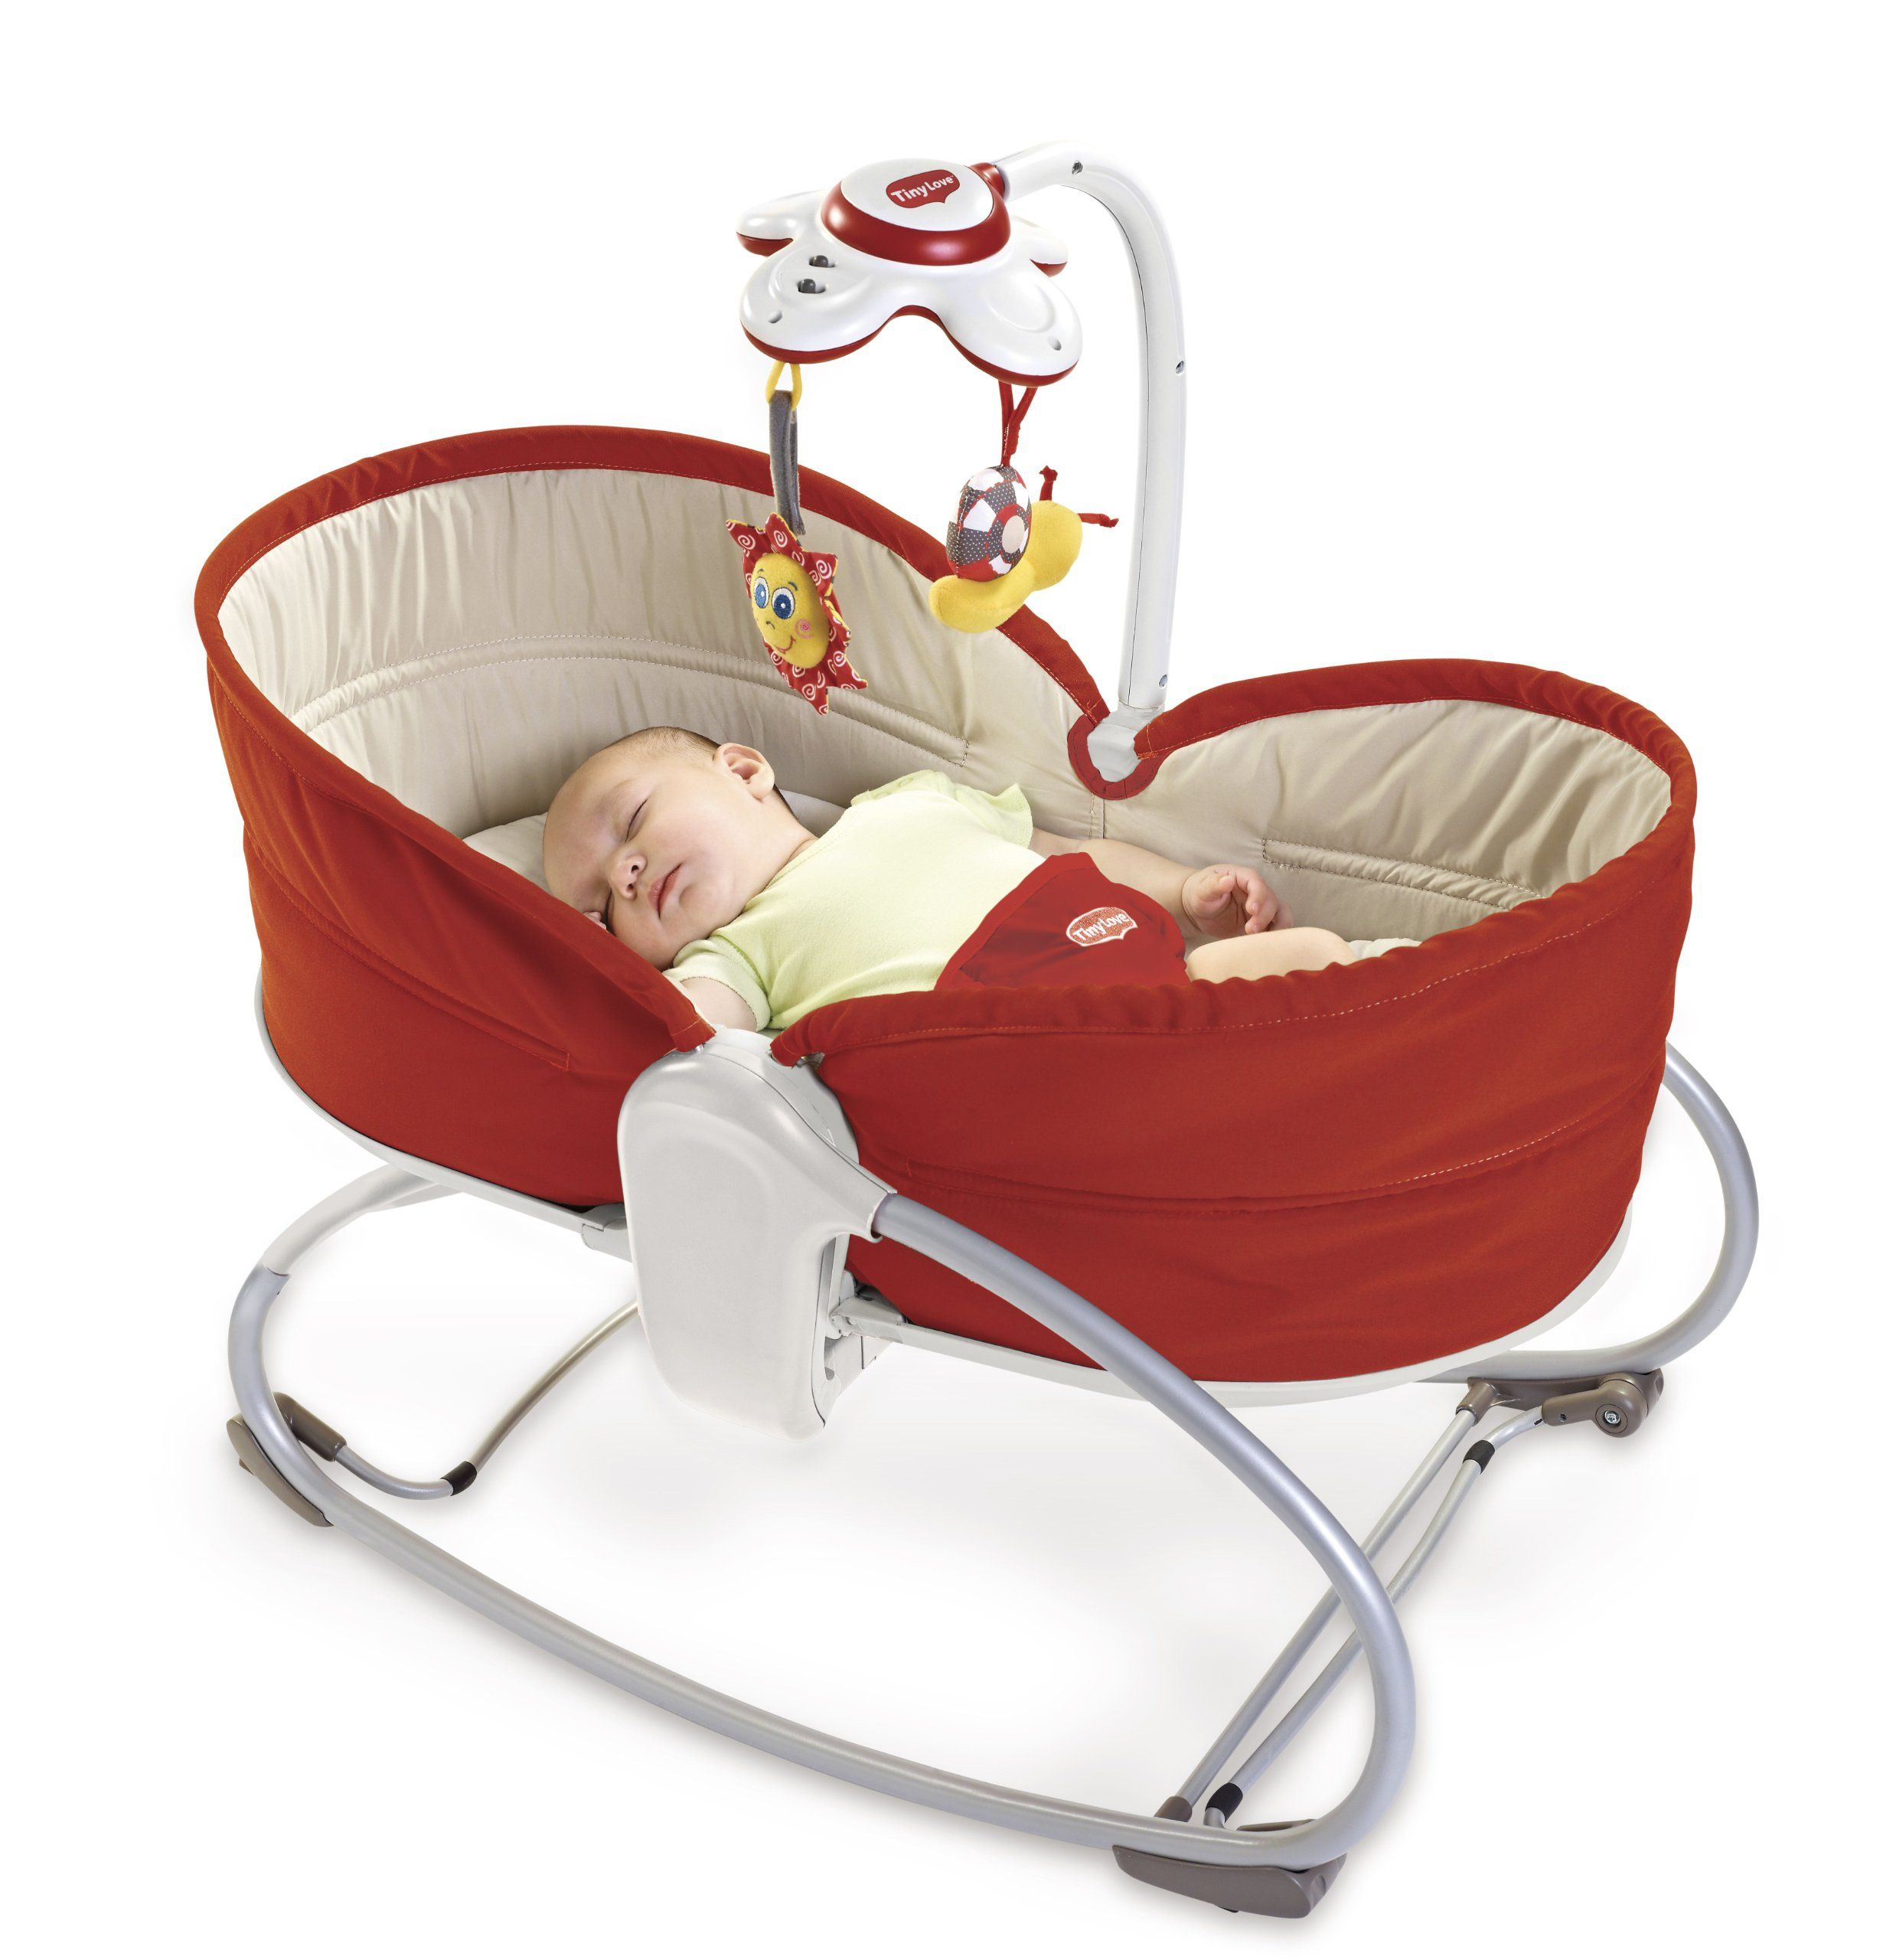 Tiny Love 3 in 1 Rocker Napper Red Tiny Love Amazon Baby